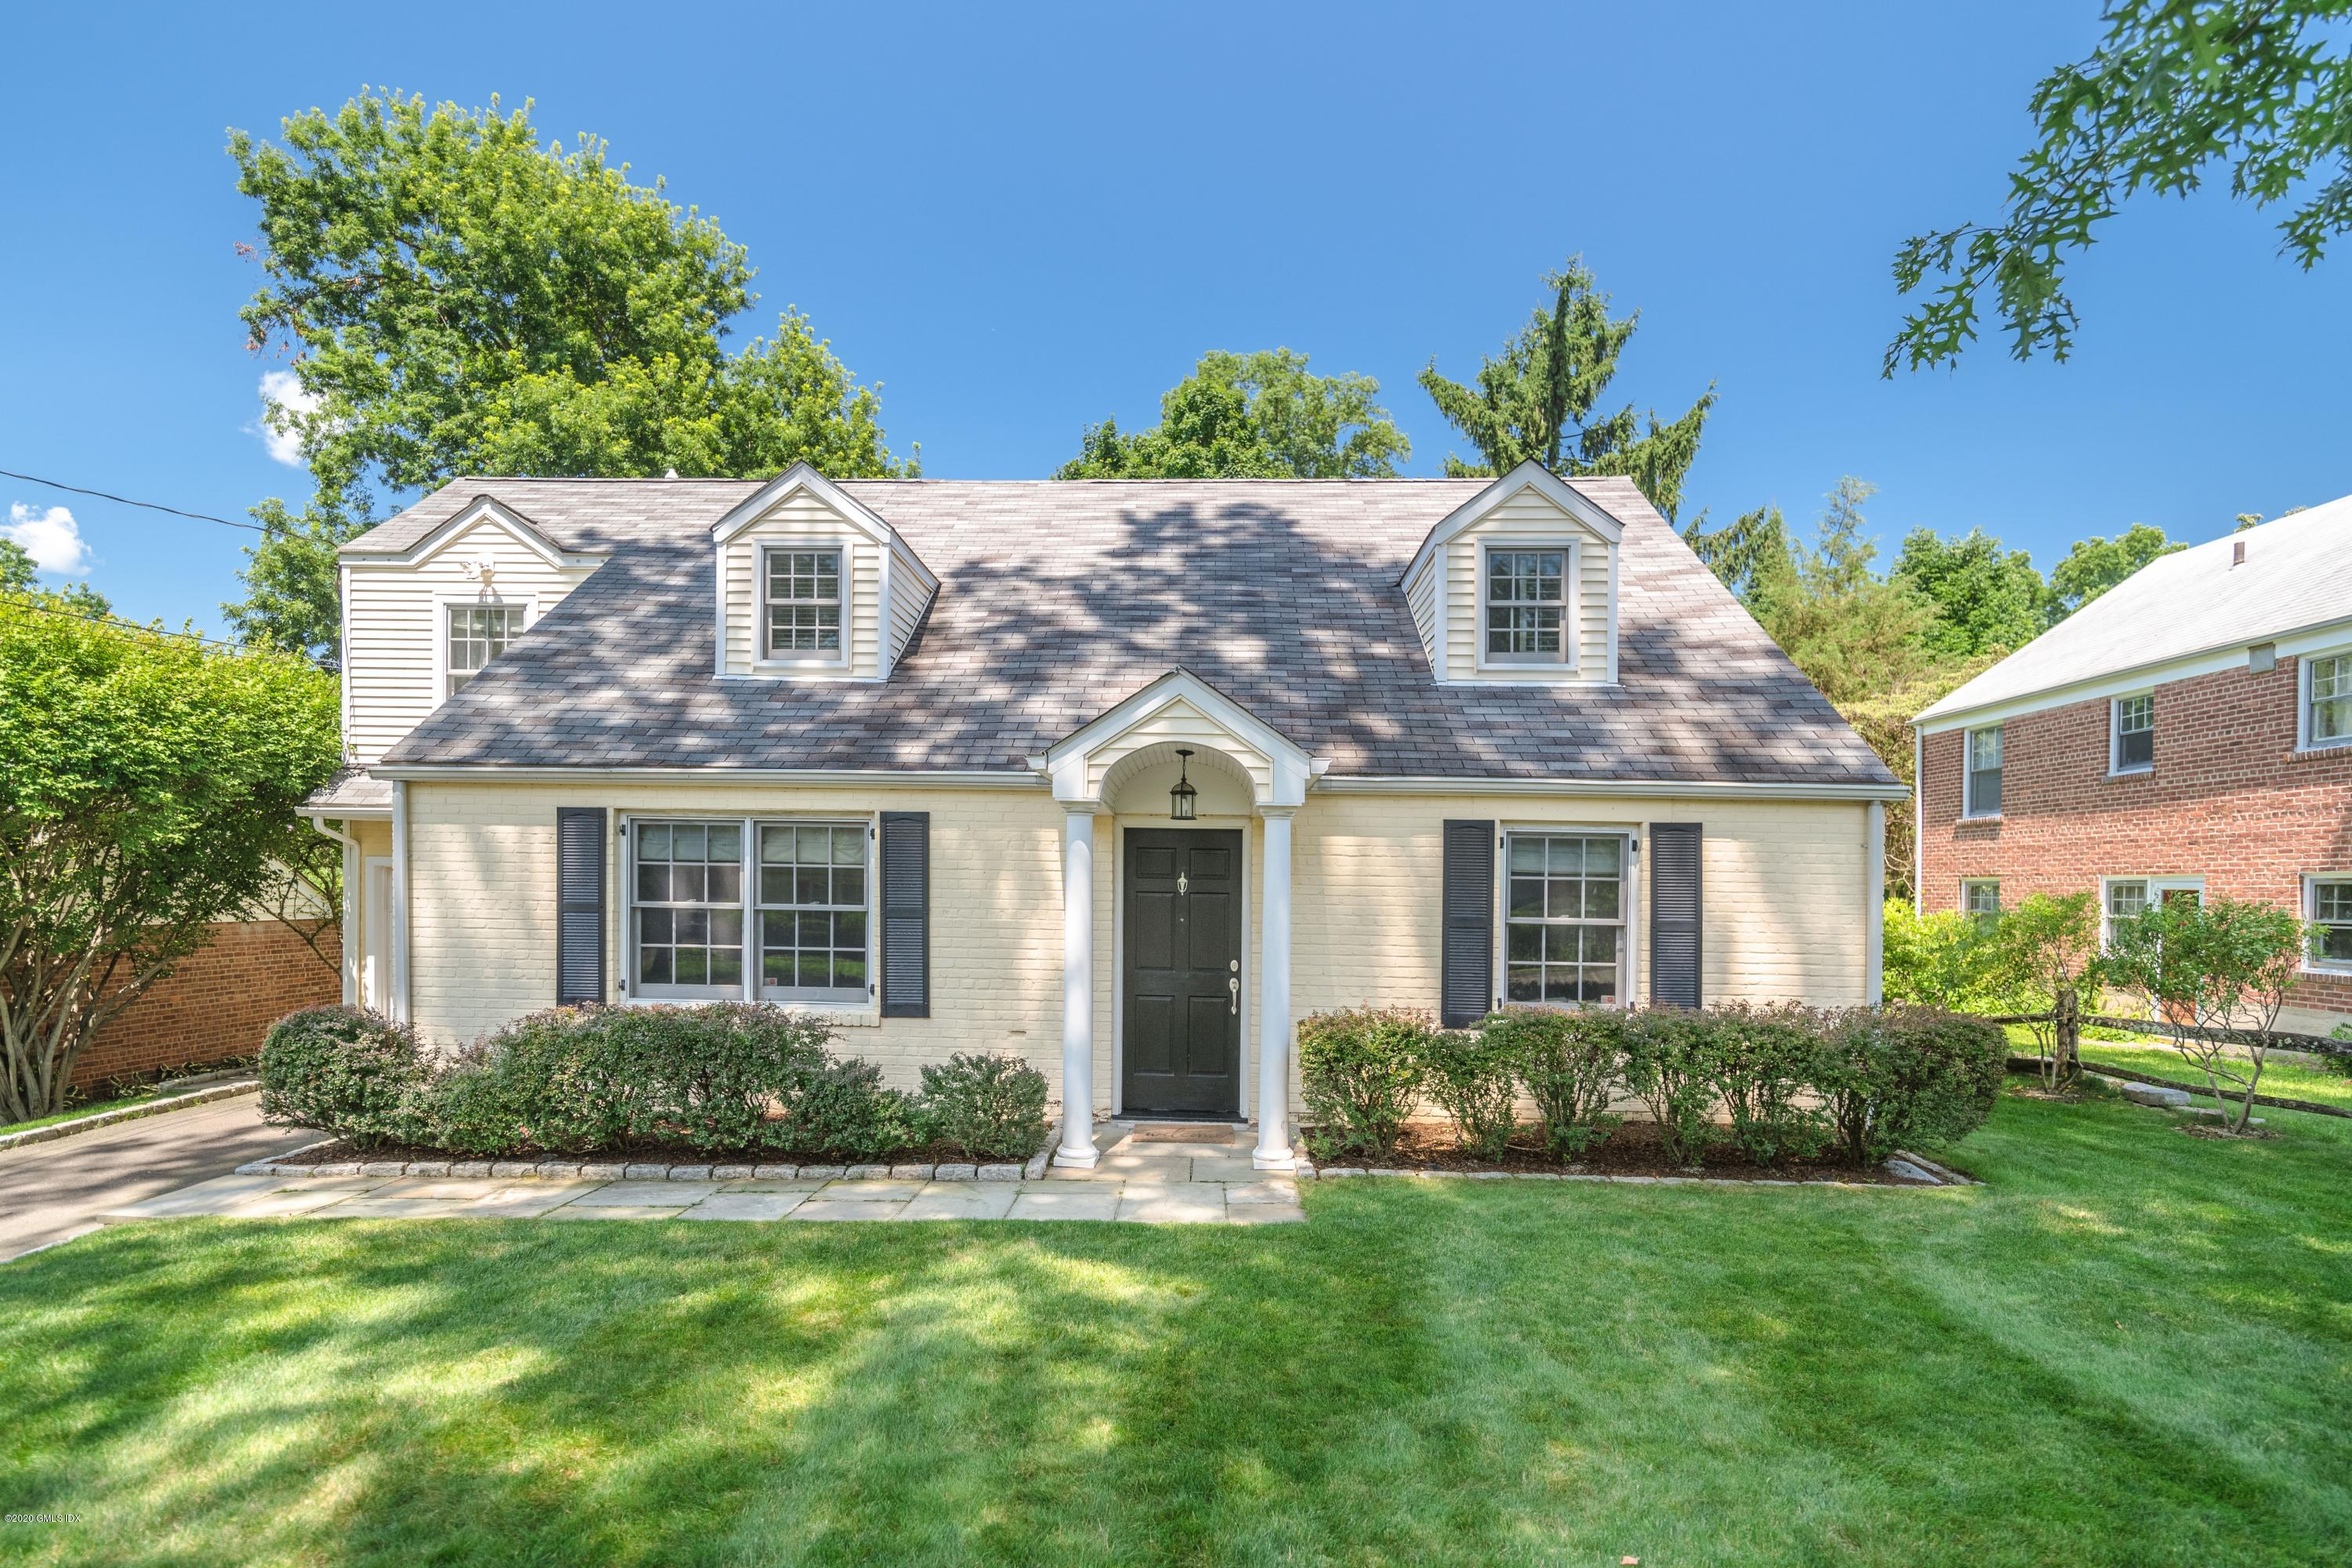 11 Halsey Drive,Old Greenwich,Connecticut 06870,4 Bedrooms Bedrooms,3 BathroomsBathrooms,Single family,Halsey,108938